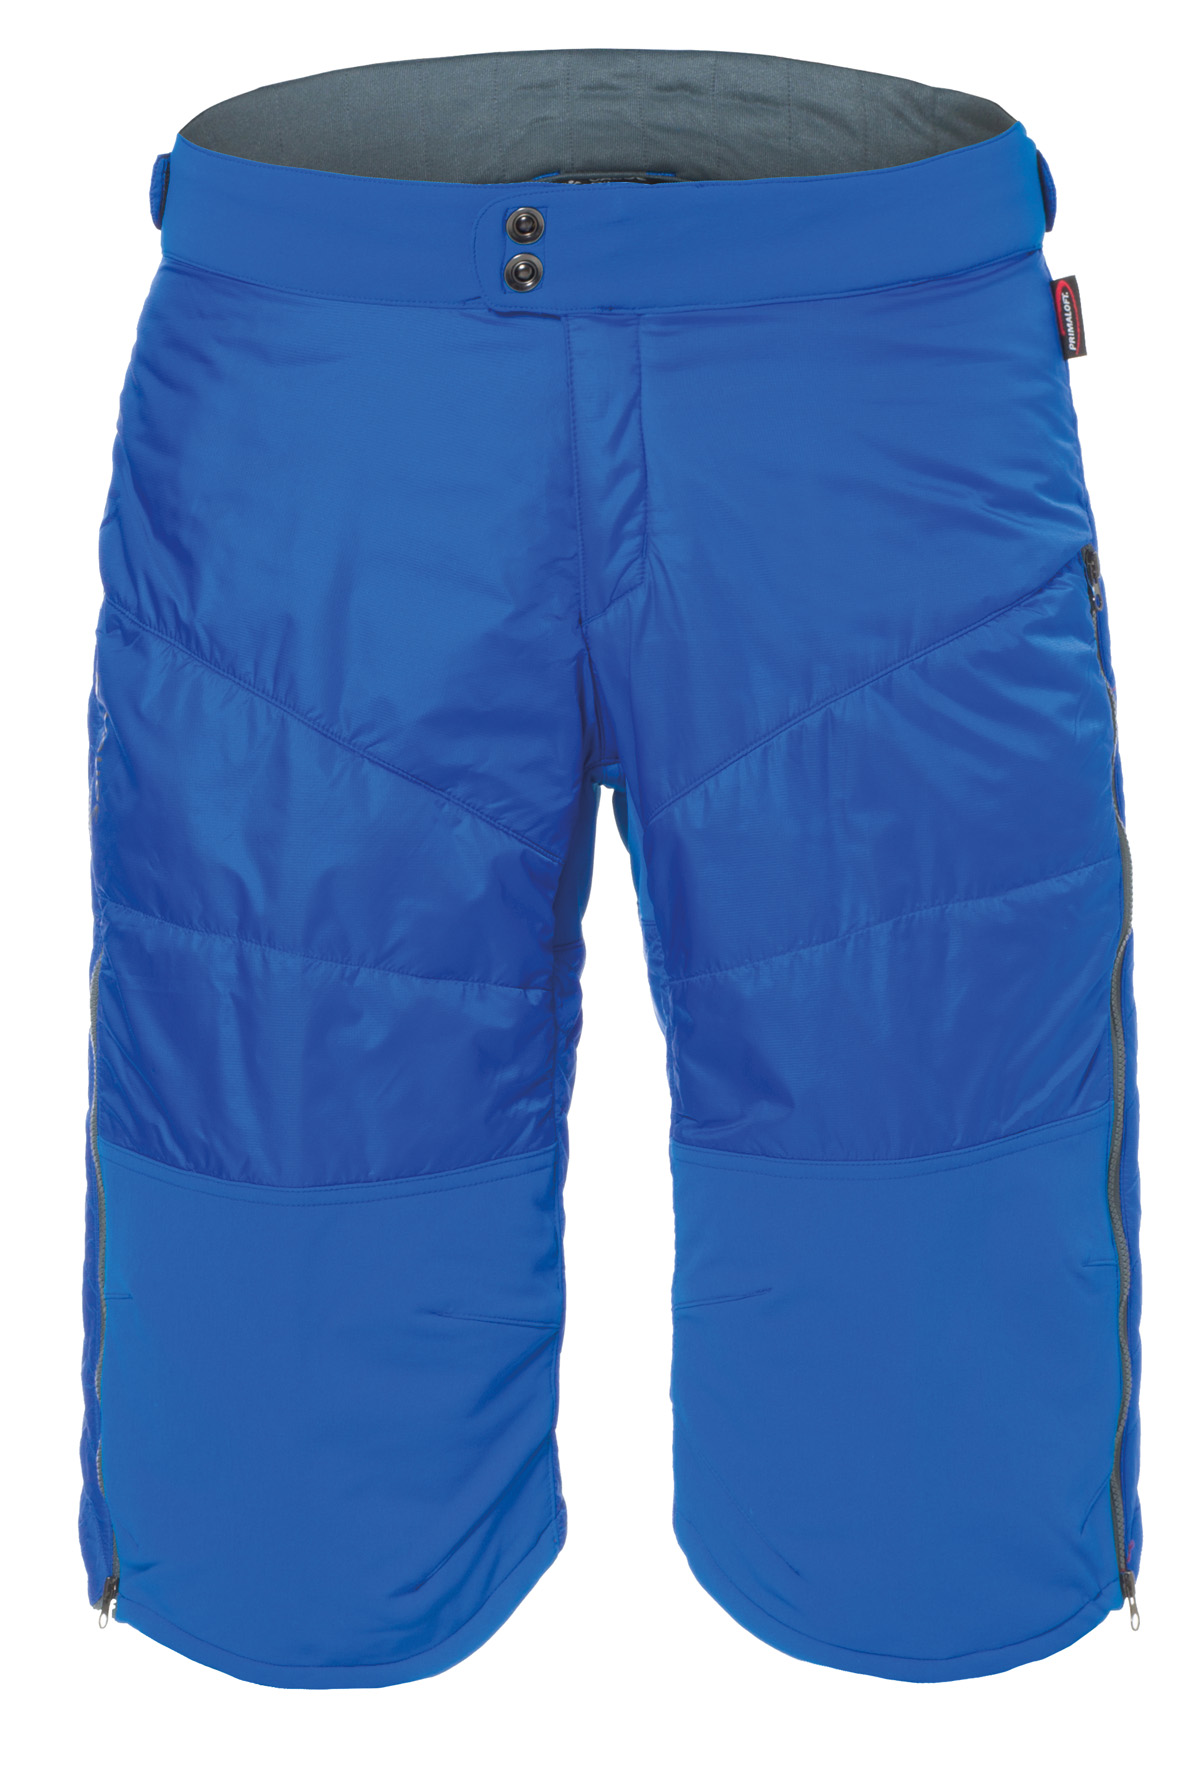 Men´s Minaki Shorts hydro blue Größe L - schneider-sports